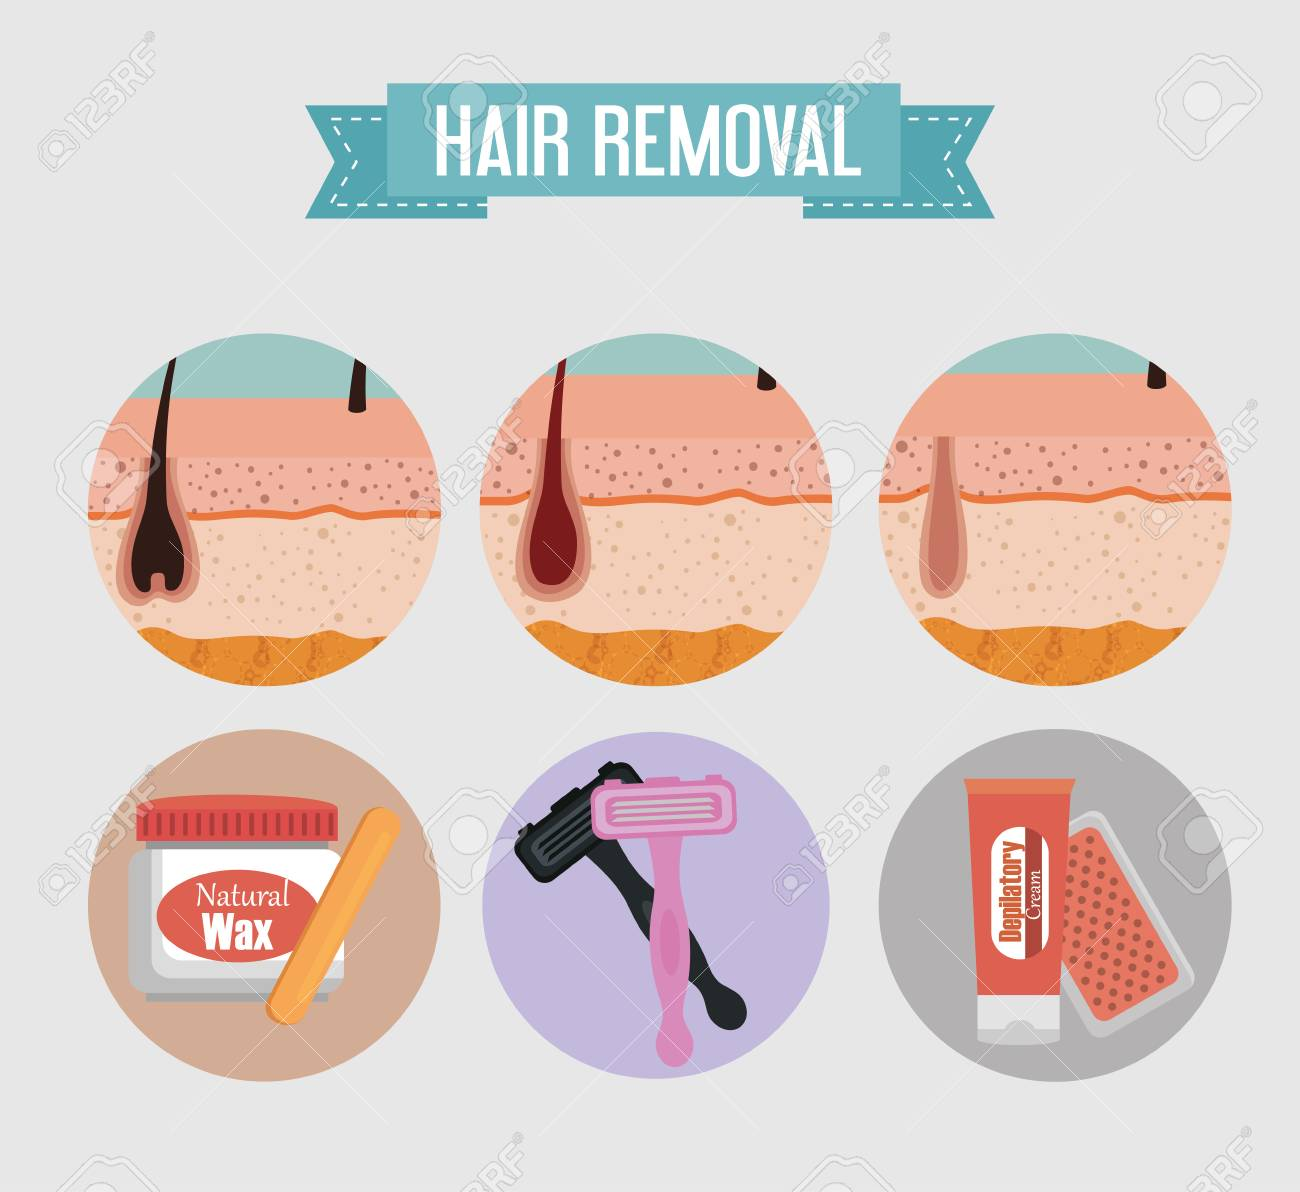 Layers Skin Structure With Hair Removal Icons Vector Illustration